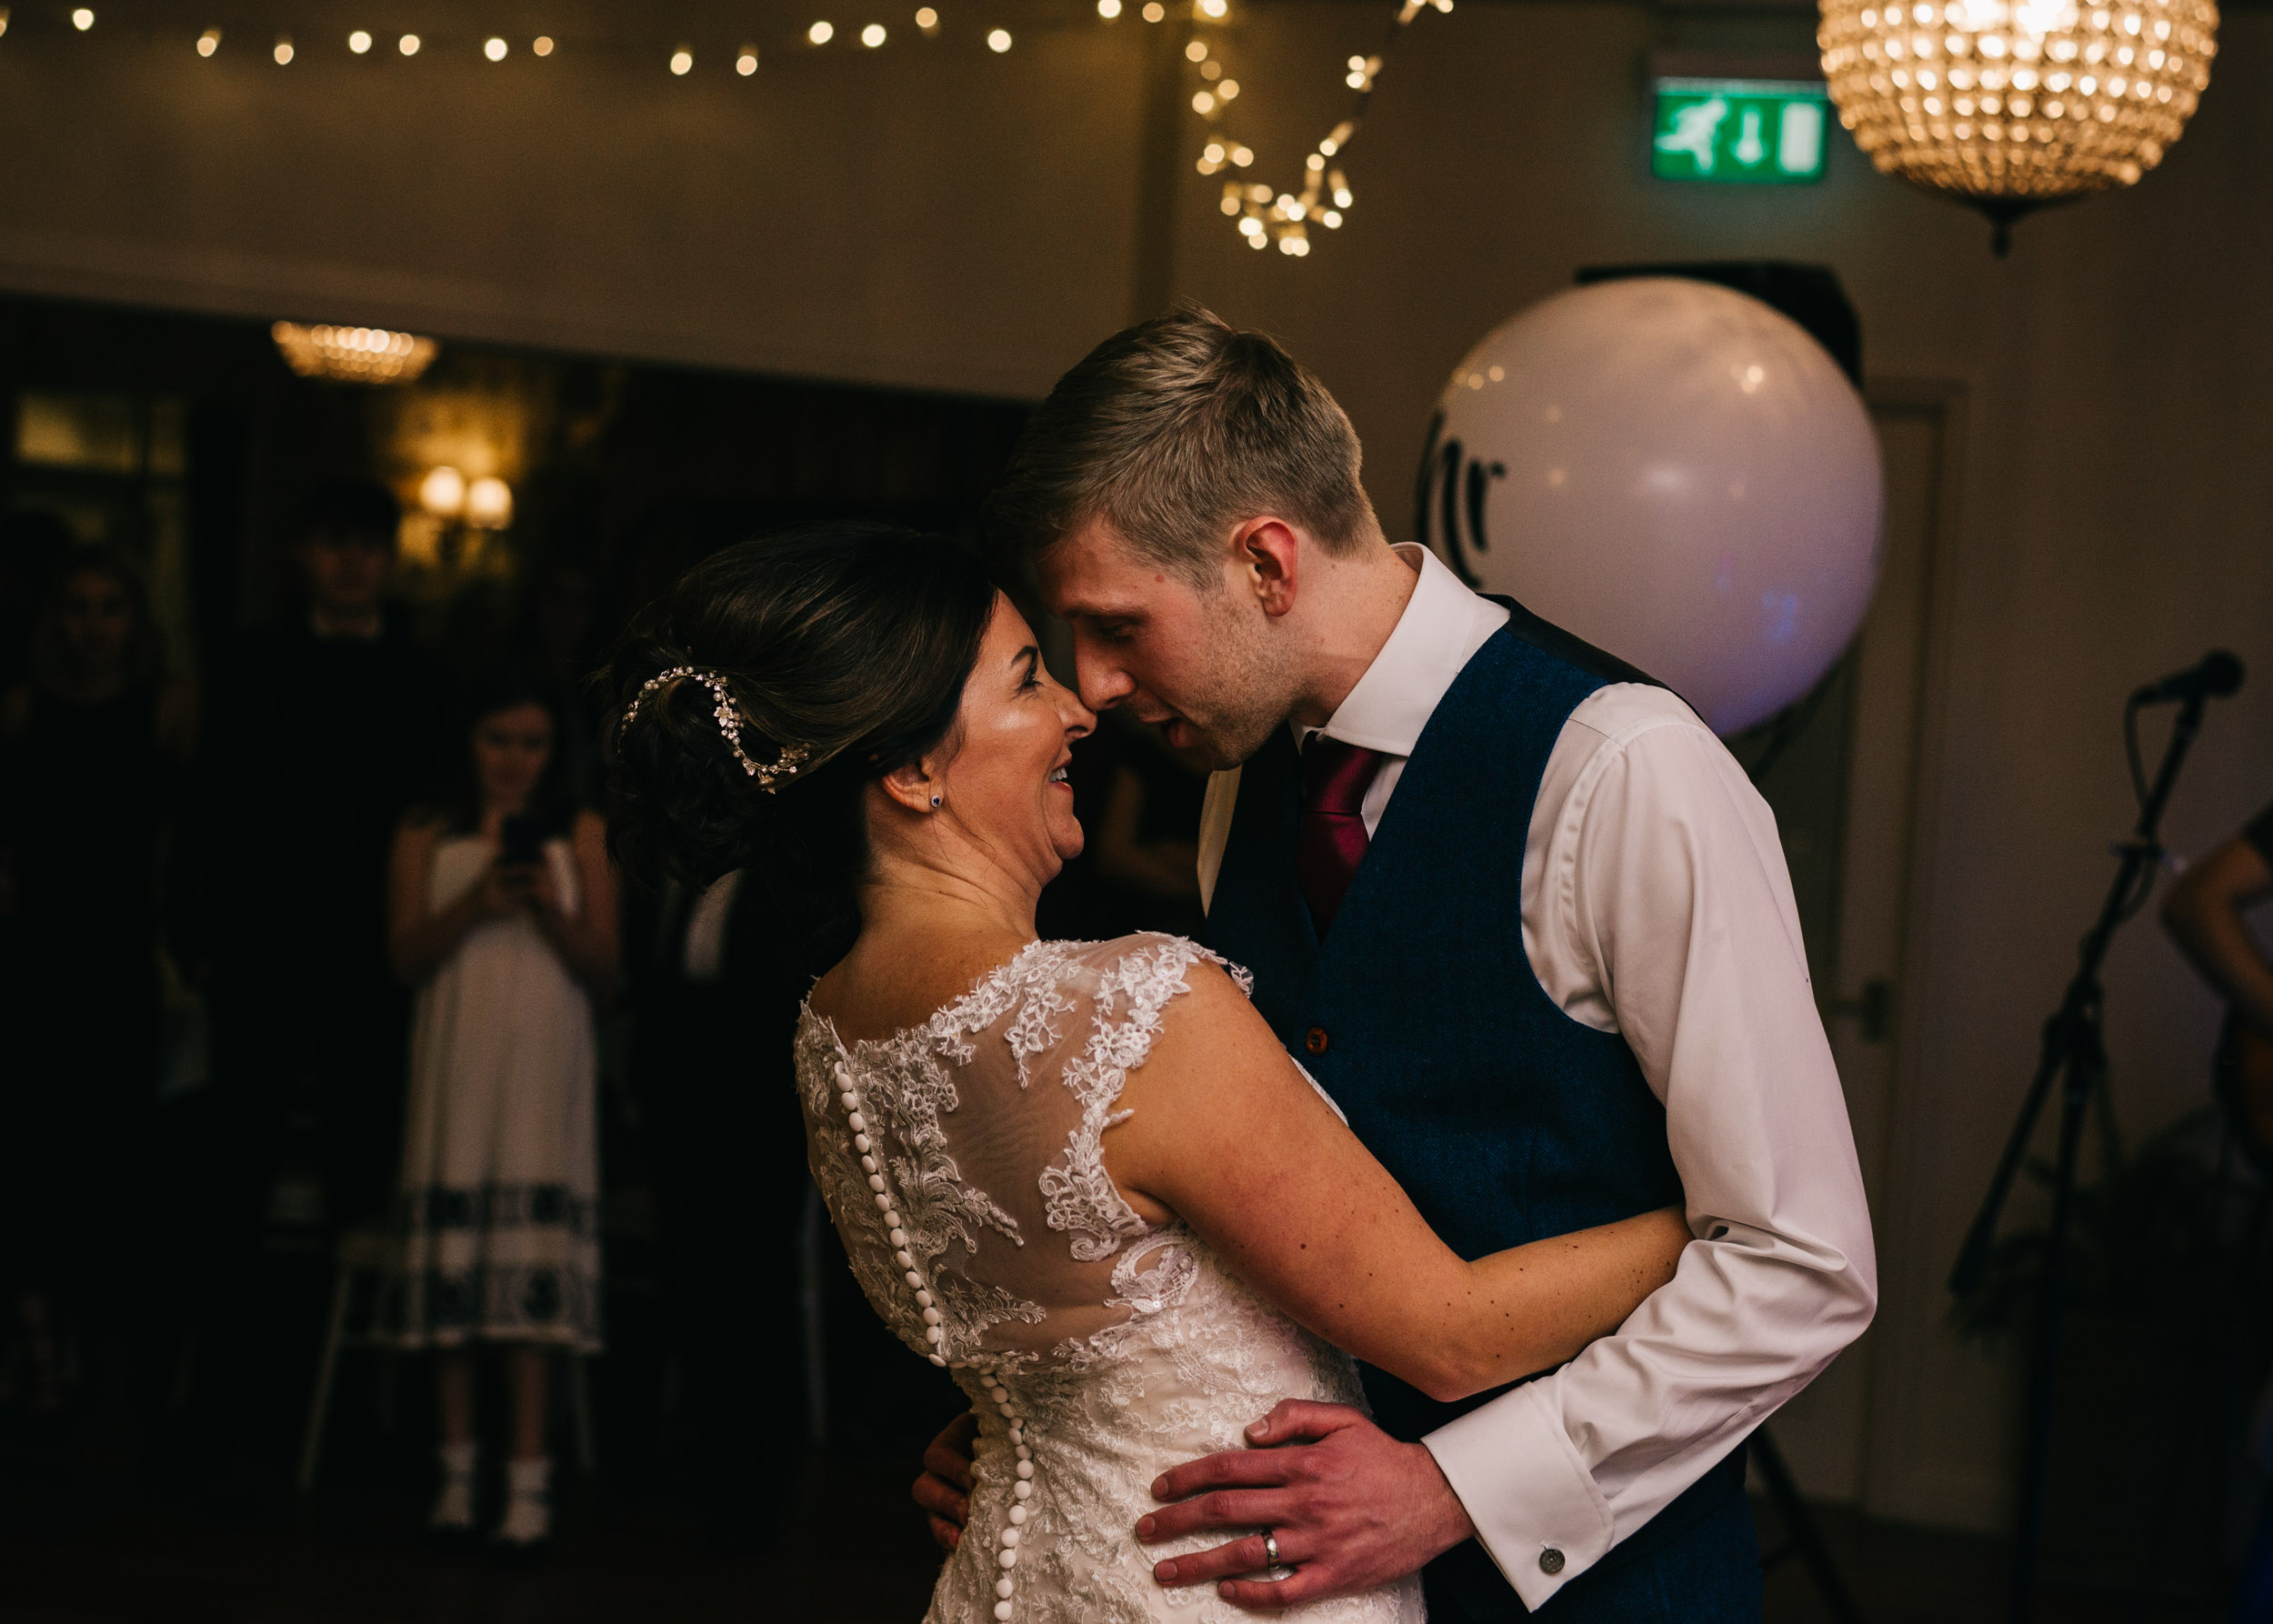 Shireburn Arms Wedding Hurst Green, Ribble Valley, Lancashire47